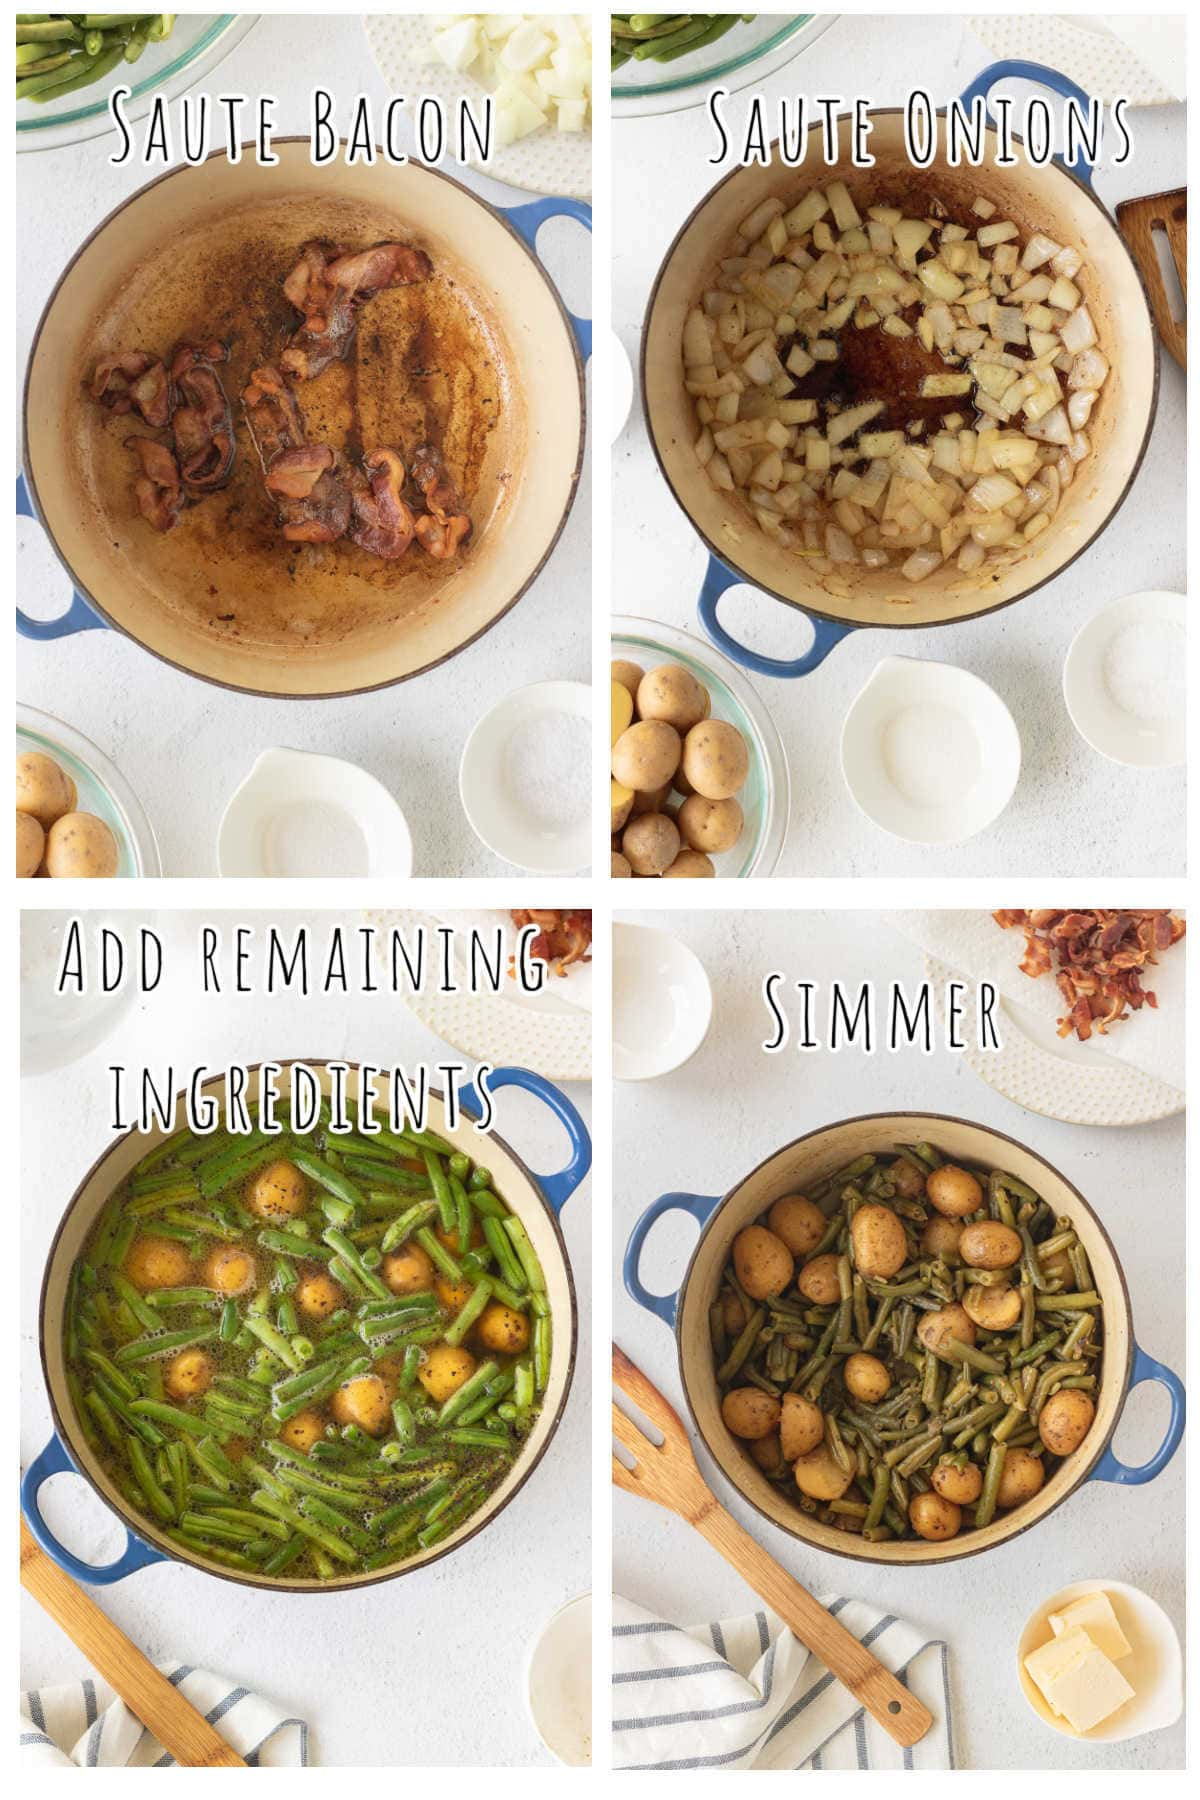 Step by step images showing how to make green beans and potatoes.